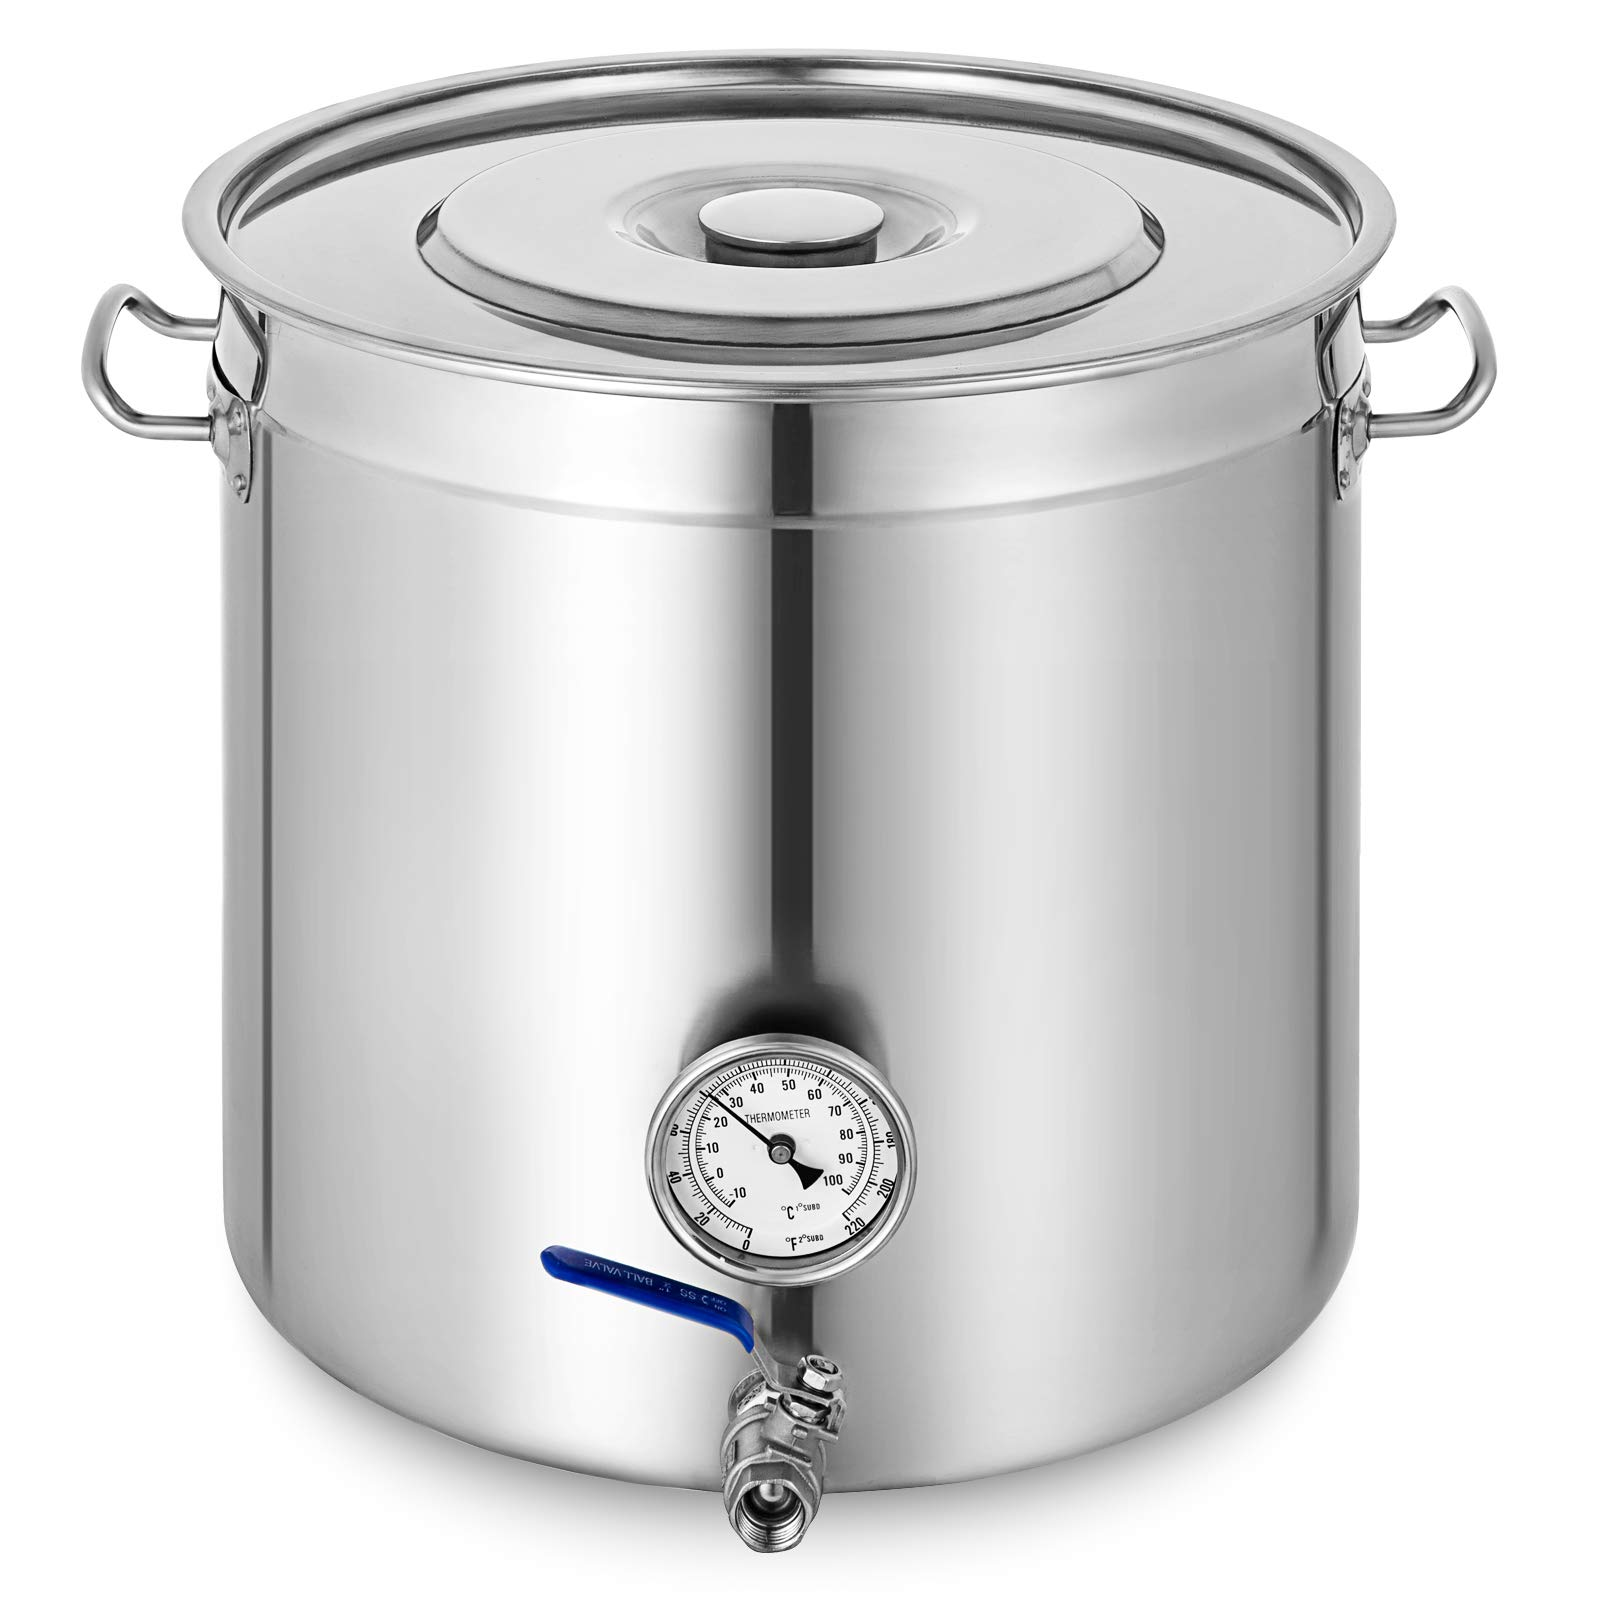 Mophorn Kettle Stockpot Stainless Steel 8.5Gal with Lid & Thermometer for Home Brew and Stock Pot Cookware, 35 Quart With